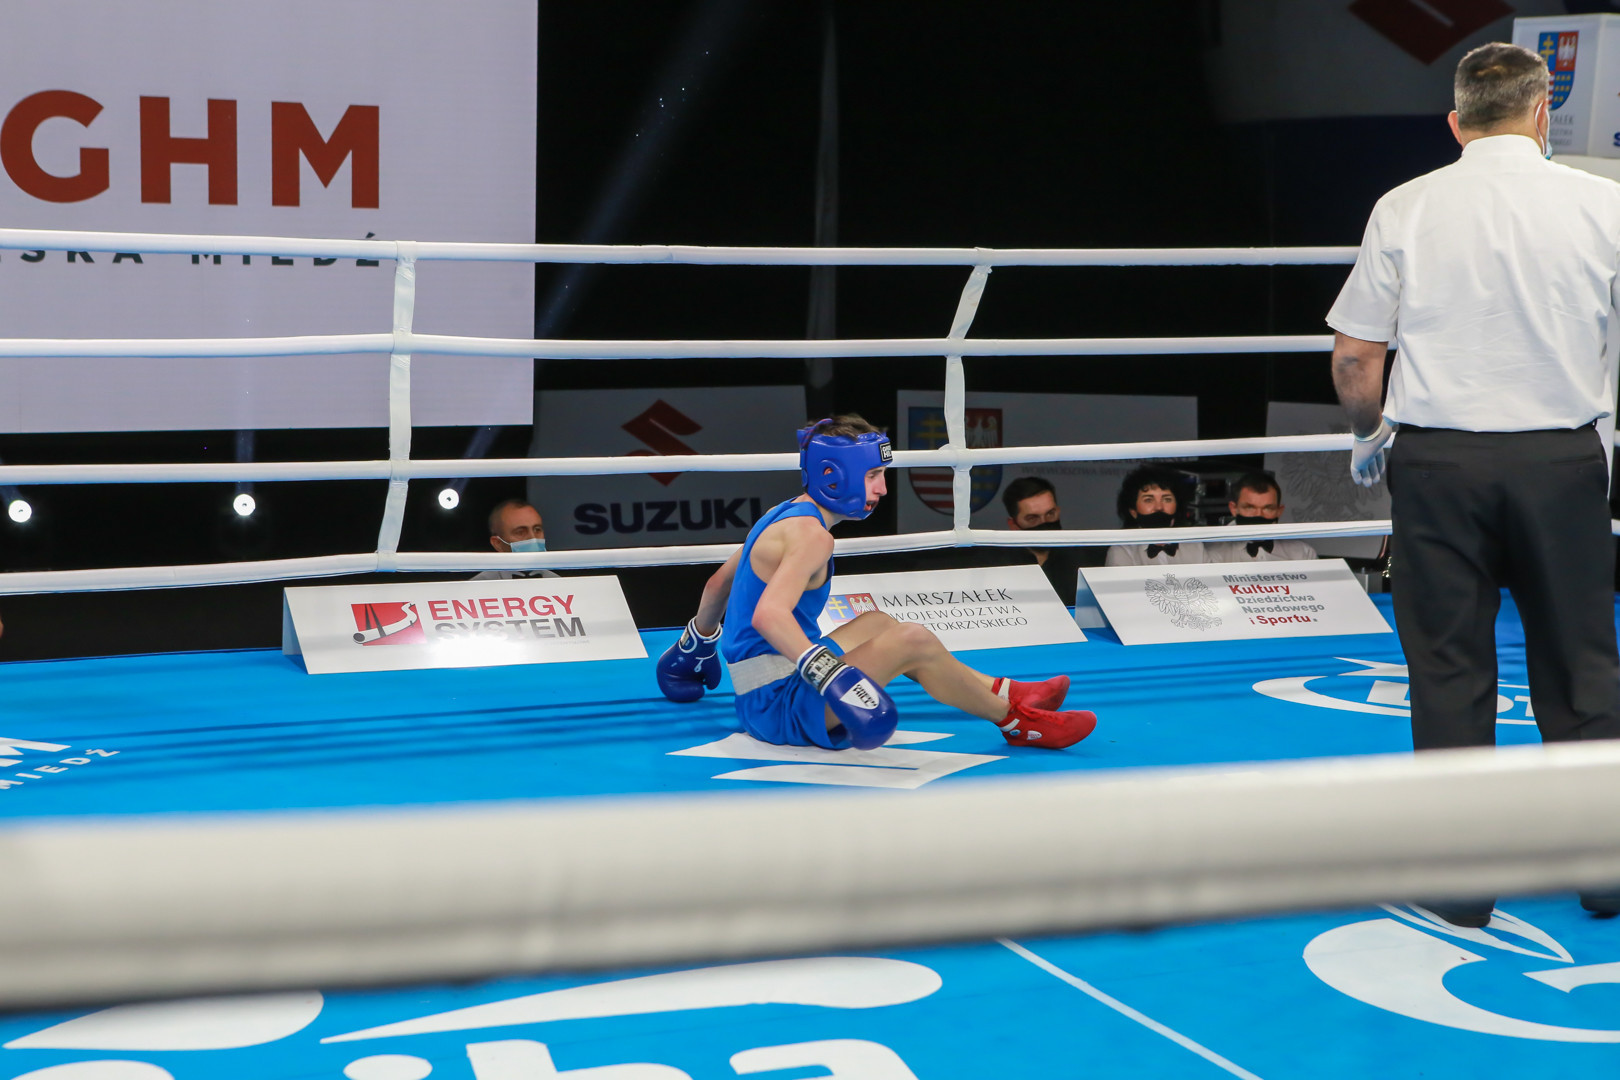 For some competitors, their dreams of glory ended suddenly ©AIBA